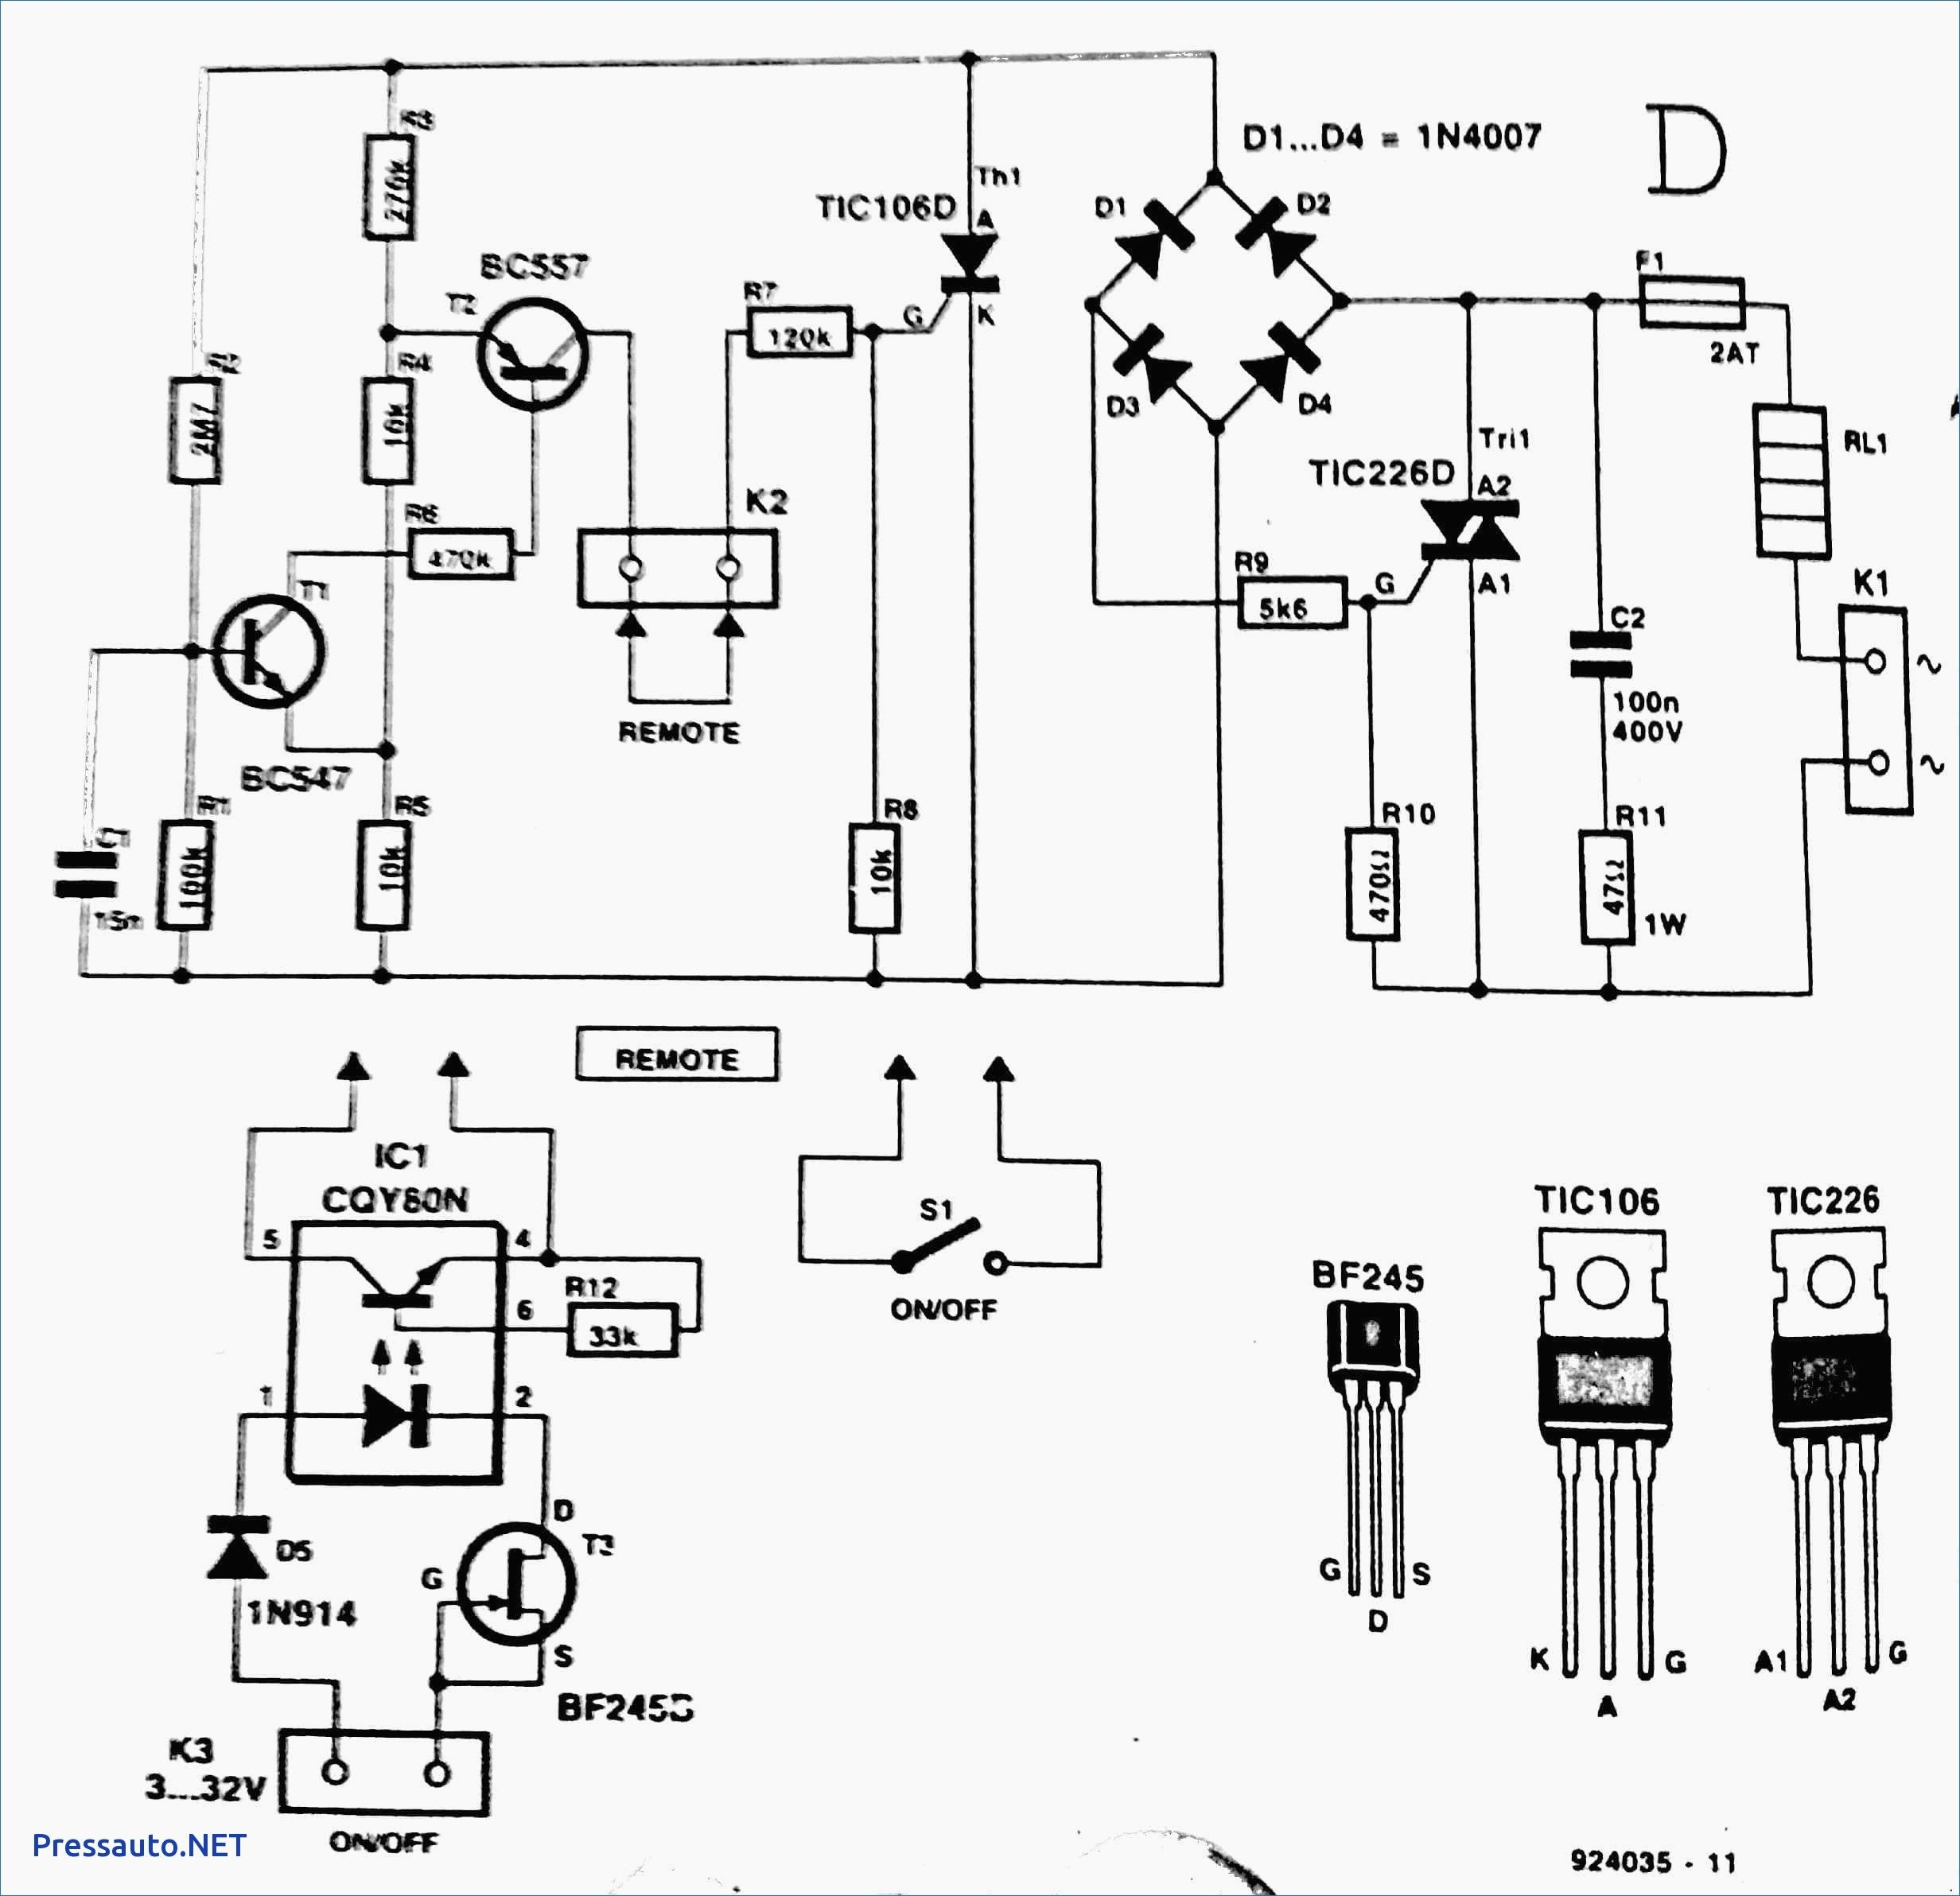 Pin By Ryanben On Diagram Template In 2019 Electrical Wiring Diagram Diagram Electrical Wiring